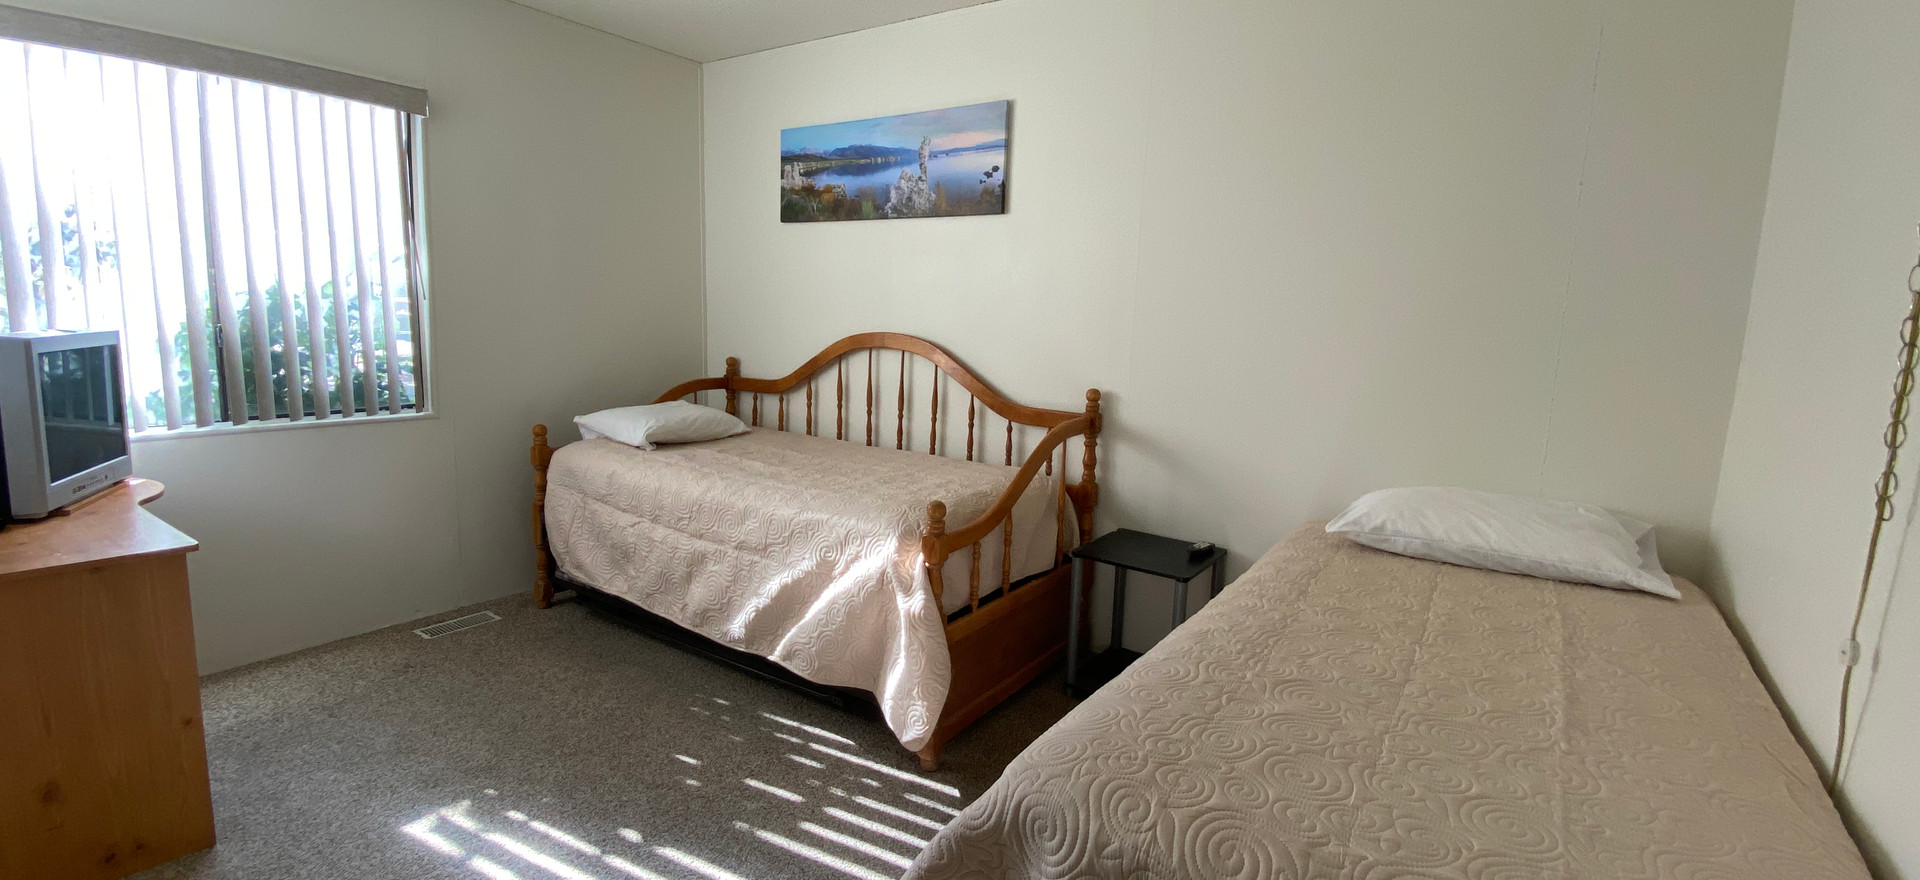 3rd Bedroom - 2 Twin Beds w/ Trundle Bed